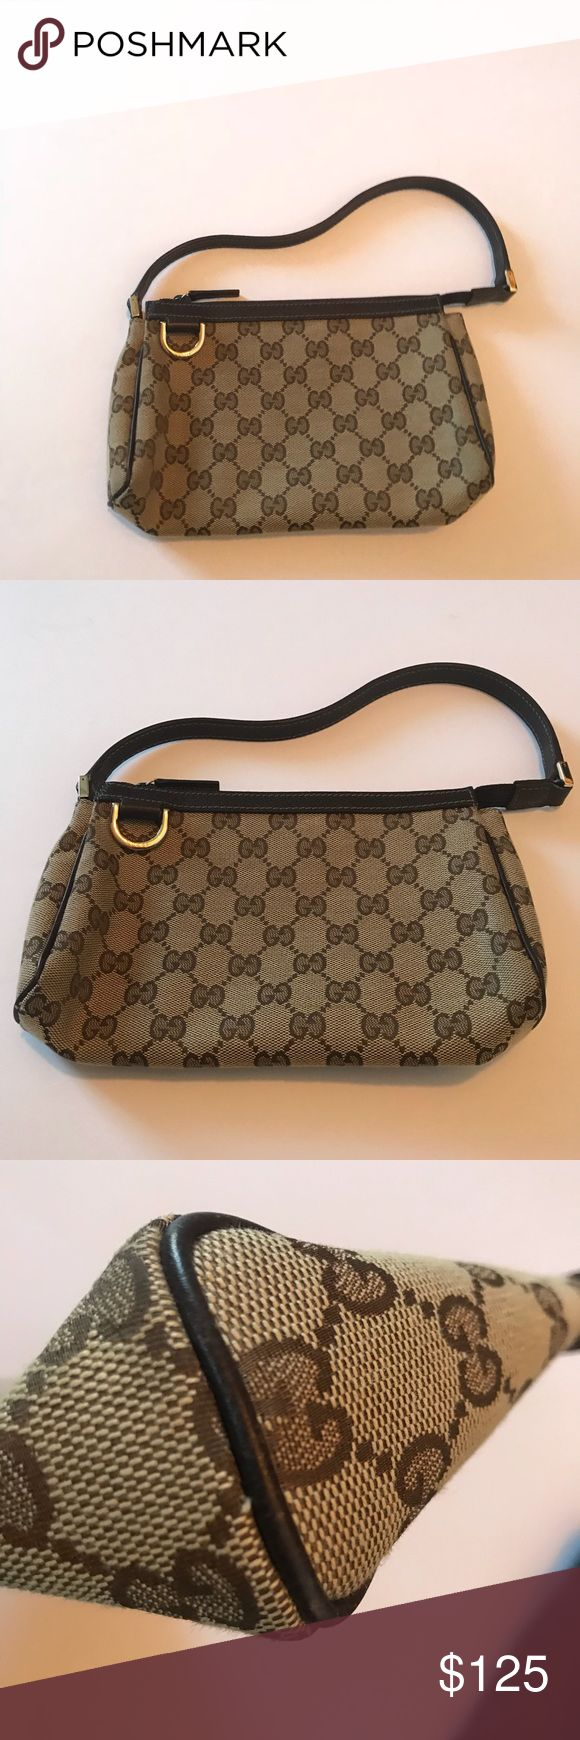 AUTHENTIC GUCCI small clutch In great condition. Pretty much perfect! Great as a clutch or a small bag inside of a big bag. Comes with original dust bag. Gucci Bags Clutches & Wristlets